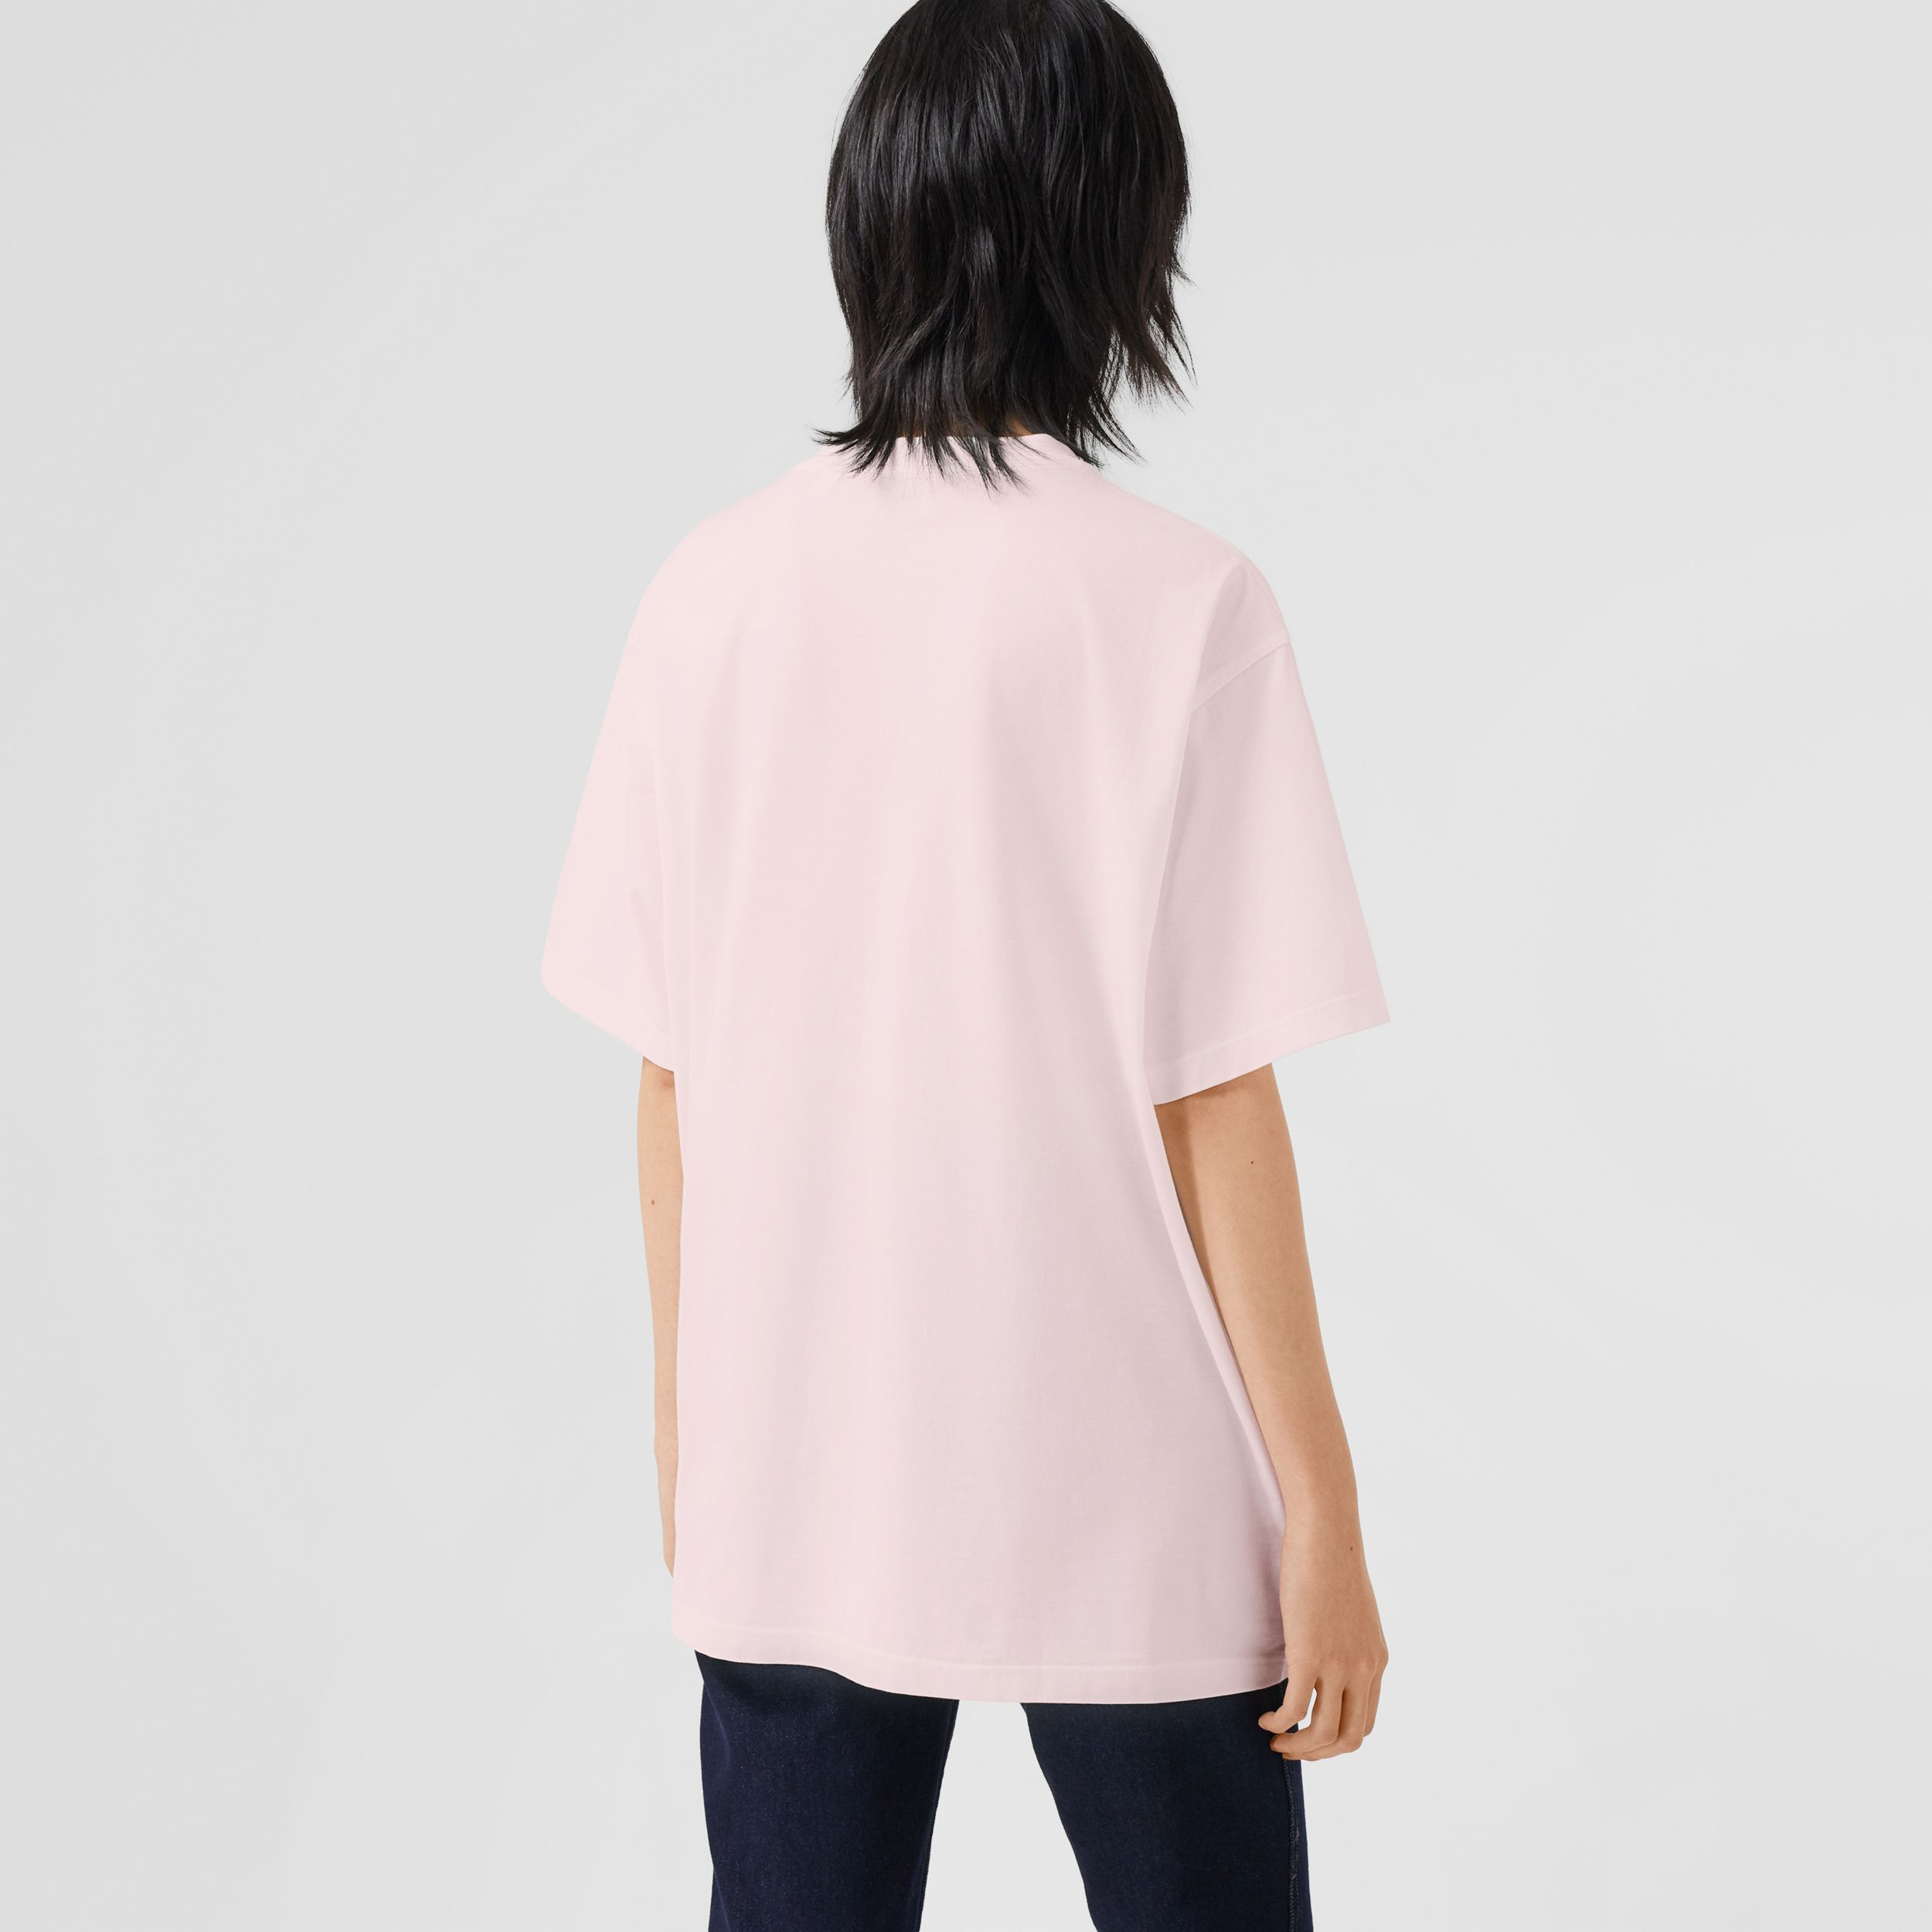 Montage Print Cotton Oversized T-shirt in Alabaster Pink - Women | Burberry - 3